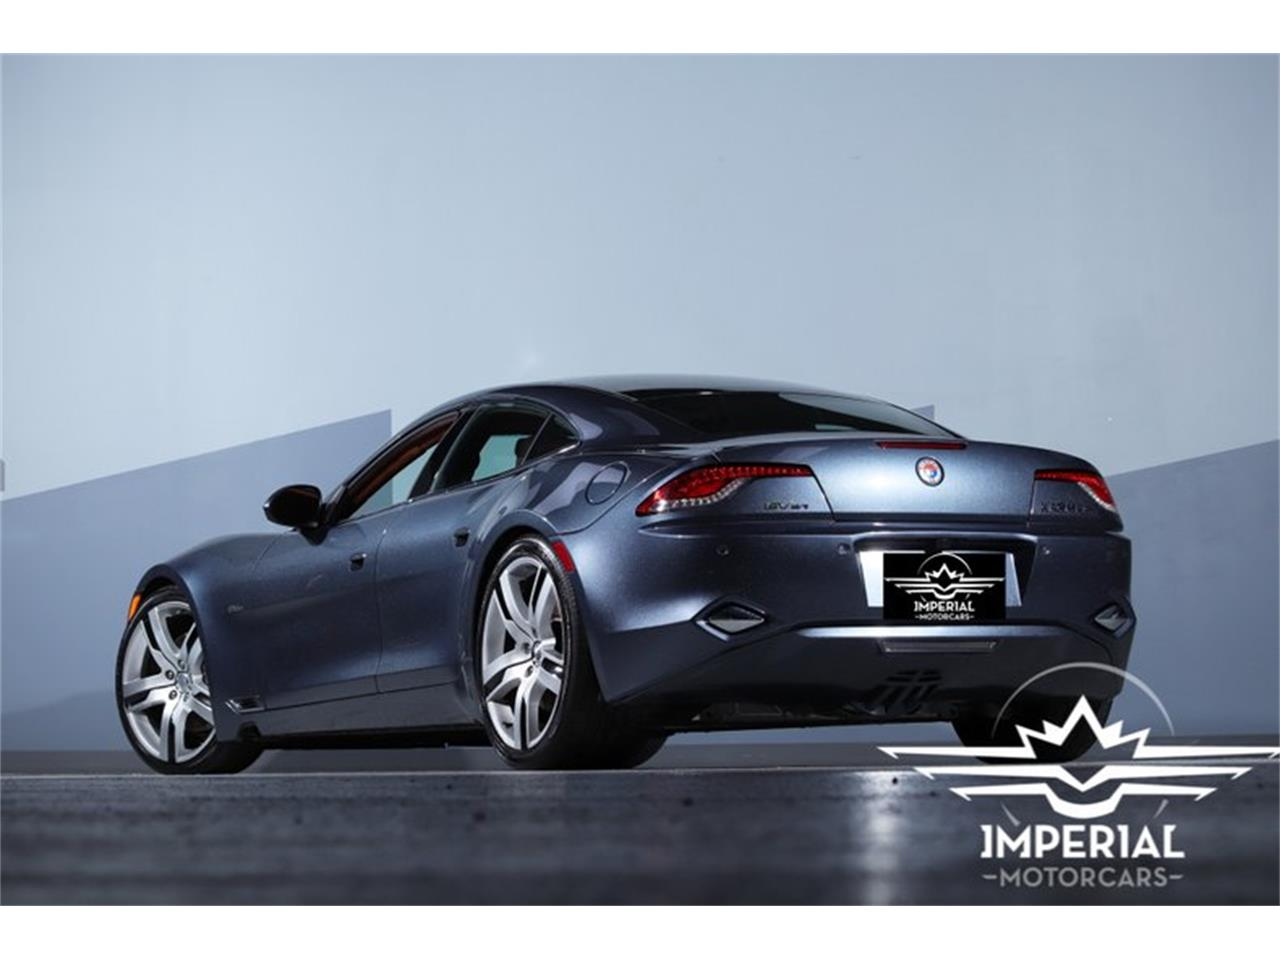 2012 Fisker Karma for sale in New Hyde Park, NY – photo 9